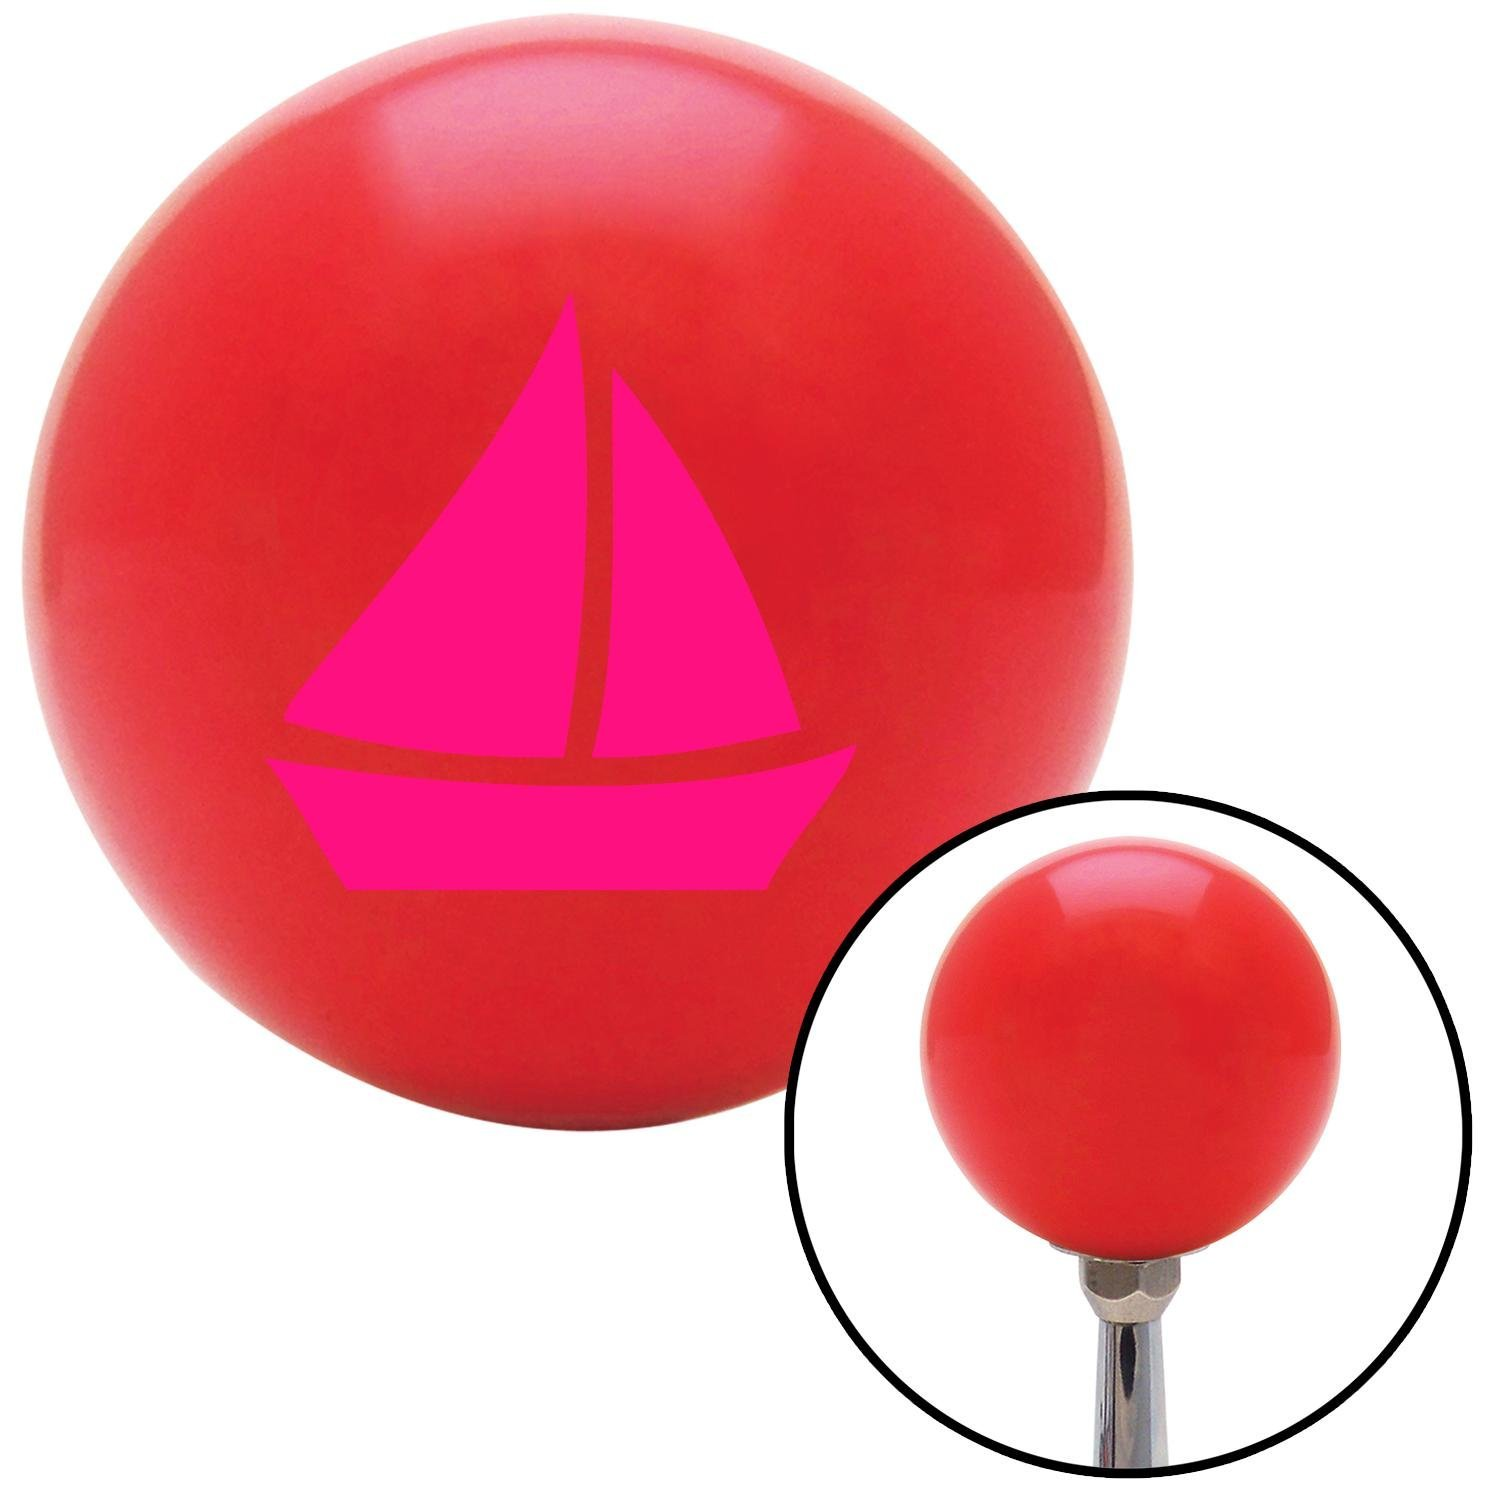 American Shifter 95983 Red Shift Knob with M16 x 1.5 Insert Pink Sail Boat 2